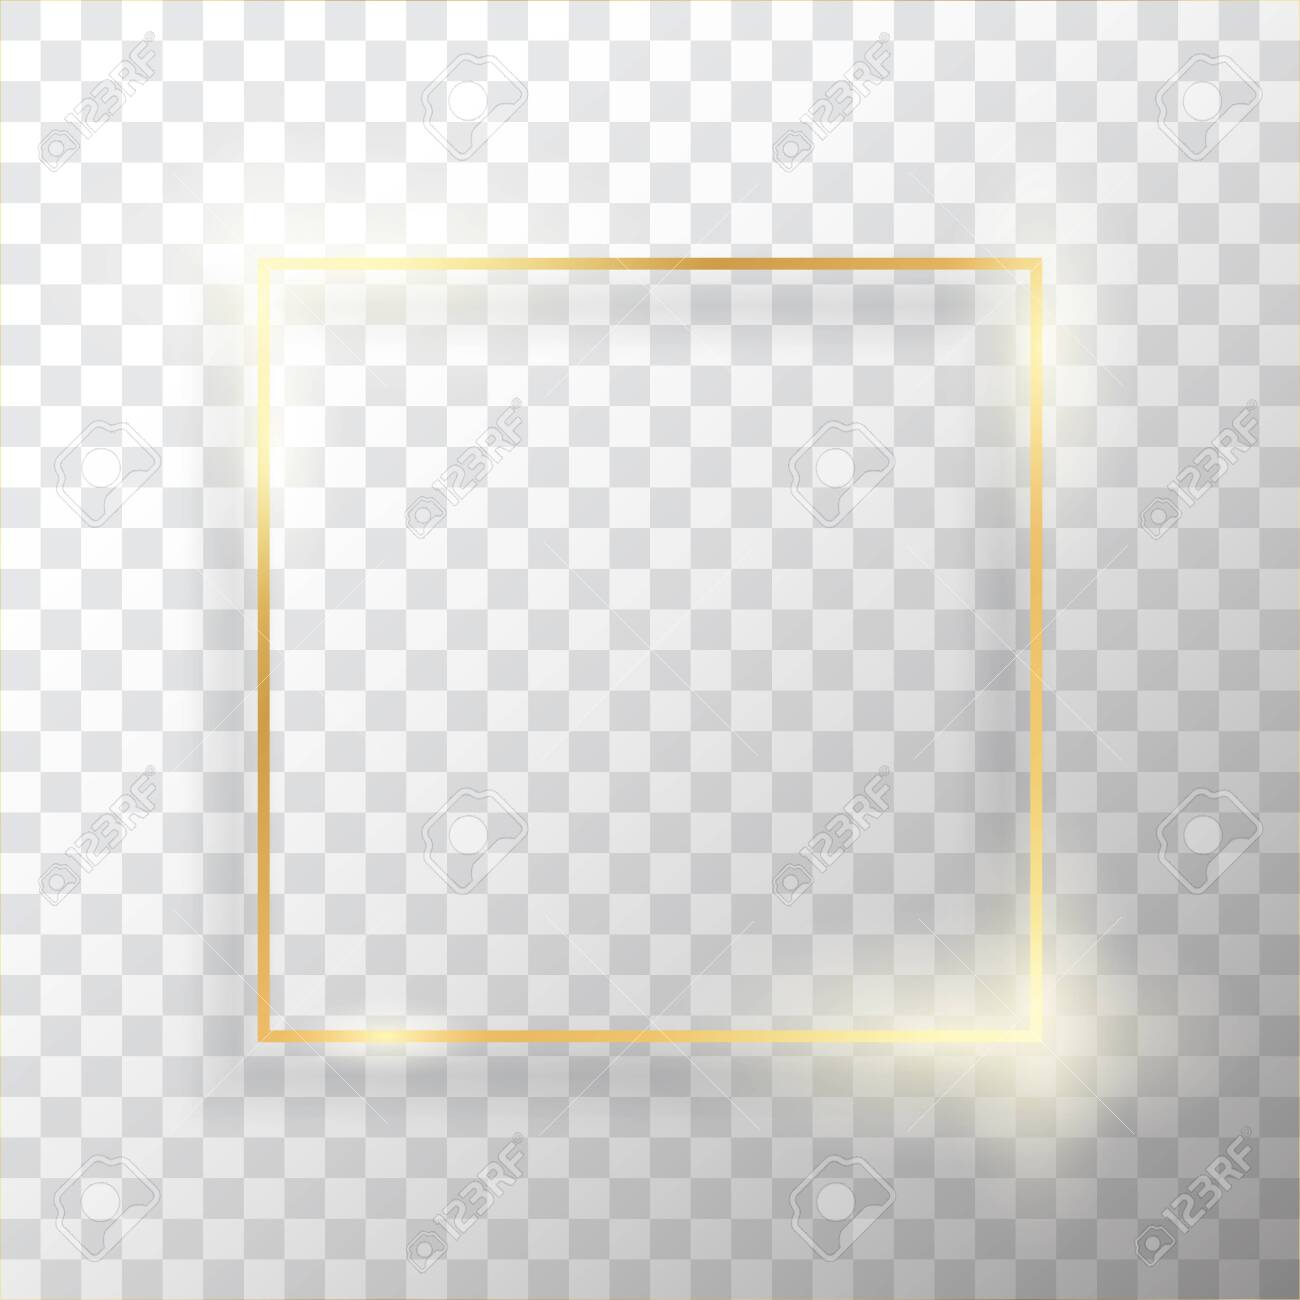 Gold square vintage frame with shadow on transparent background. Golden luxury rectangular border - realistic vector illustration - 124129734